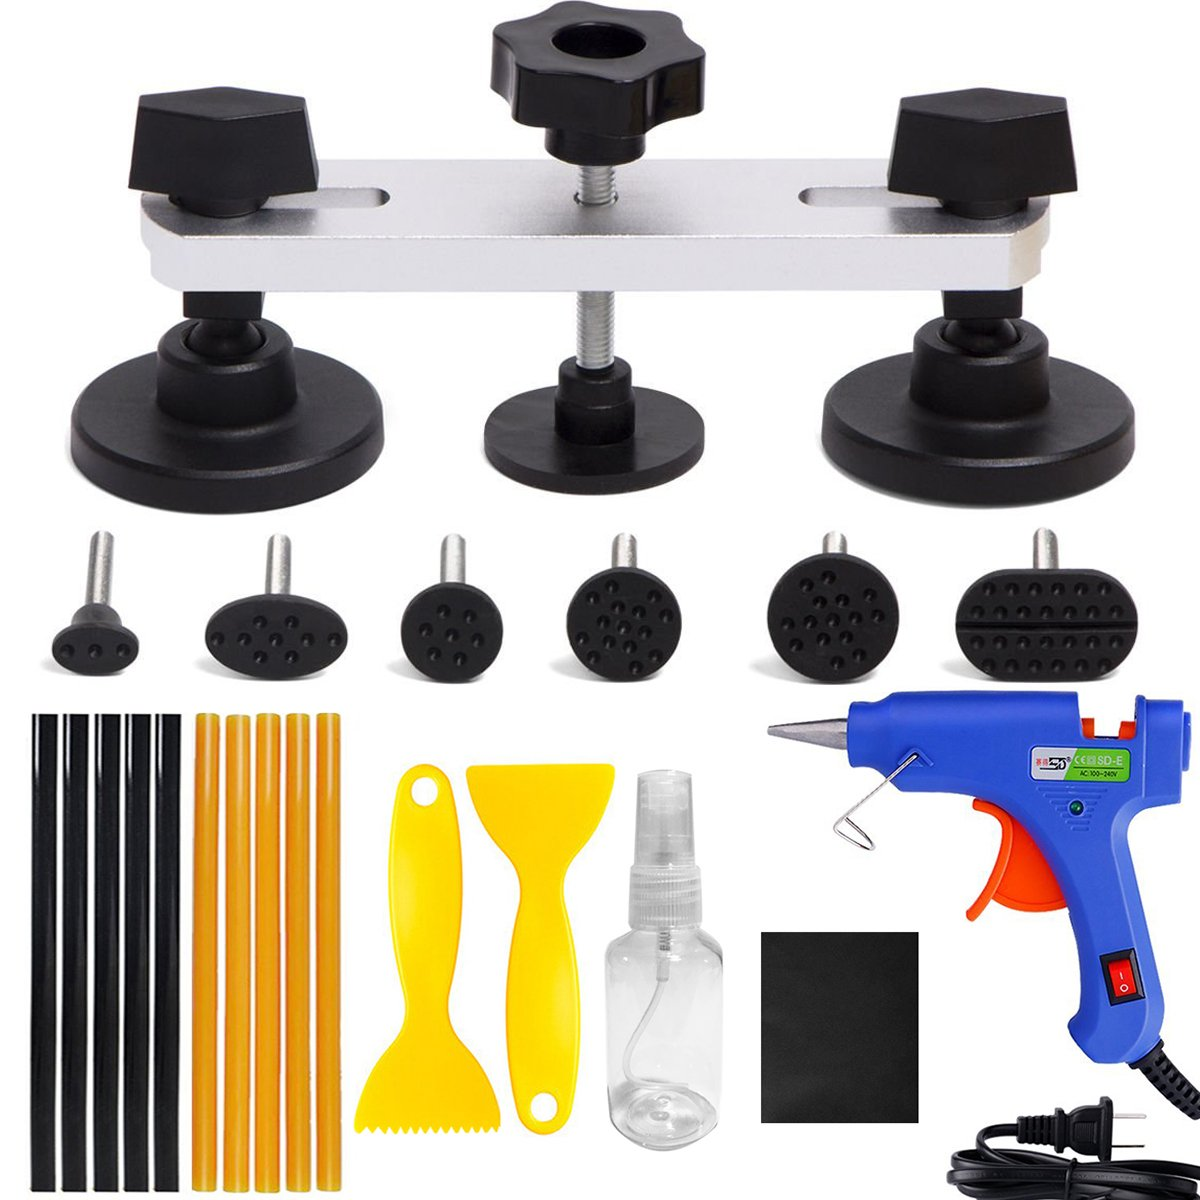 ARISD 22PCS Auto Body Paintless Dent Removal Tools Kit Bridge Dent Puller Kits with Hot Melt Glue Gun PDR Tools